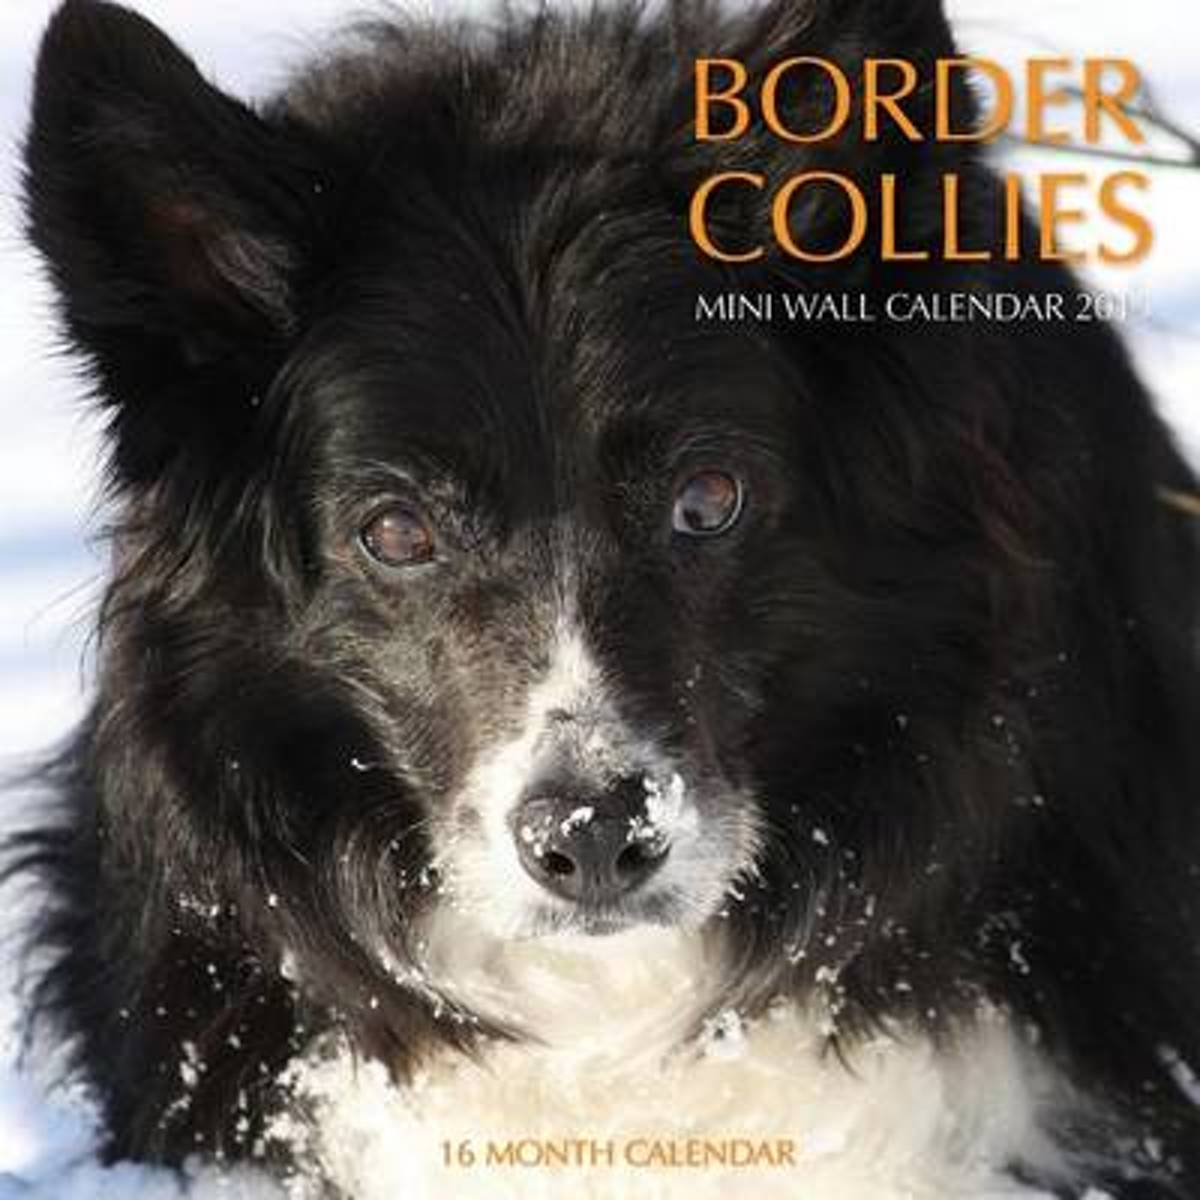 Border Collies Calendar 2015